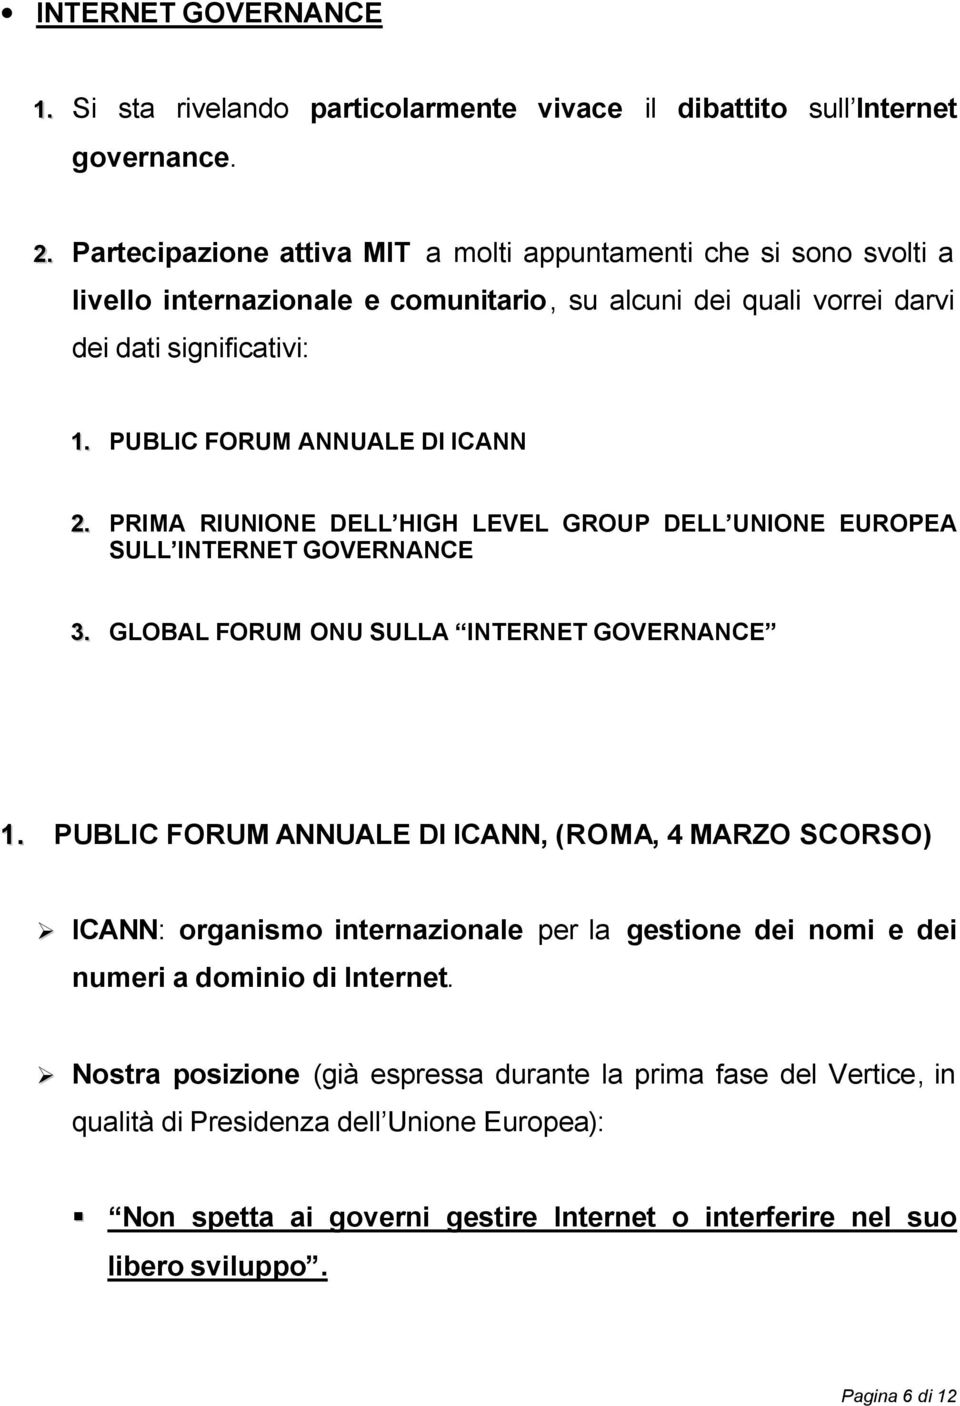 PUBLIC FORUM ANNUALE DI ICANN 2. PRIMA RIUNIONE DELL HIGH LEVEL GROUP DELL UNIONE EUROPEA SULL INTERNET GOVERNANCE 3. GLOBAL FORUM ONU SULLA INTERNET GOVERNANCE 1.